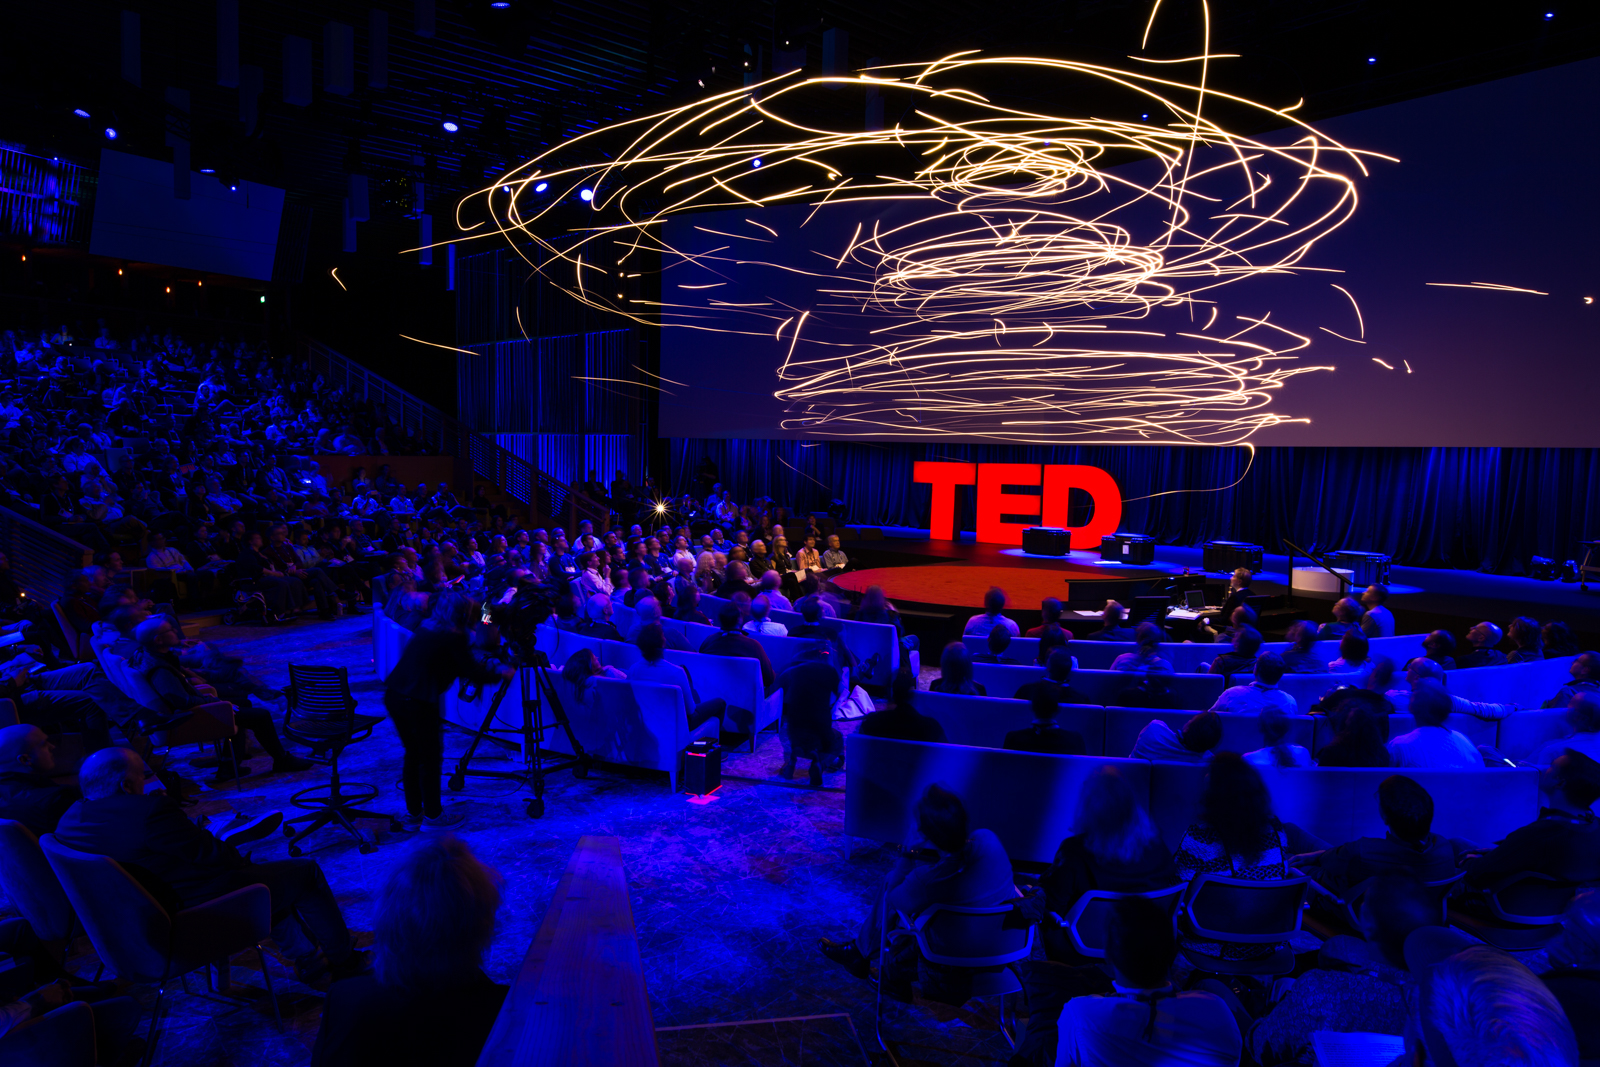 Flying machines demo by Raffaello D'Andrea at TED2016 - Dream, February 15-19, 2016, Vancouver Convention Center, Vancouver, Canada. Photo: Bret Hartman / Ryan Lash / TED